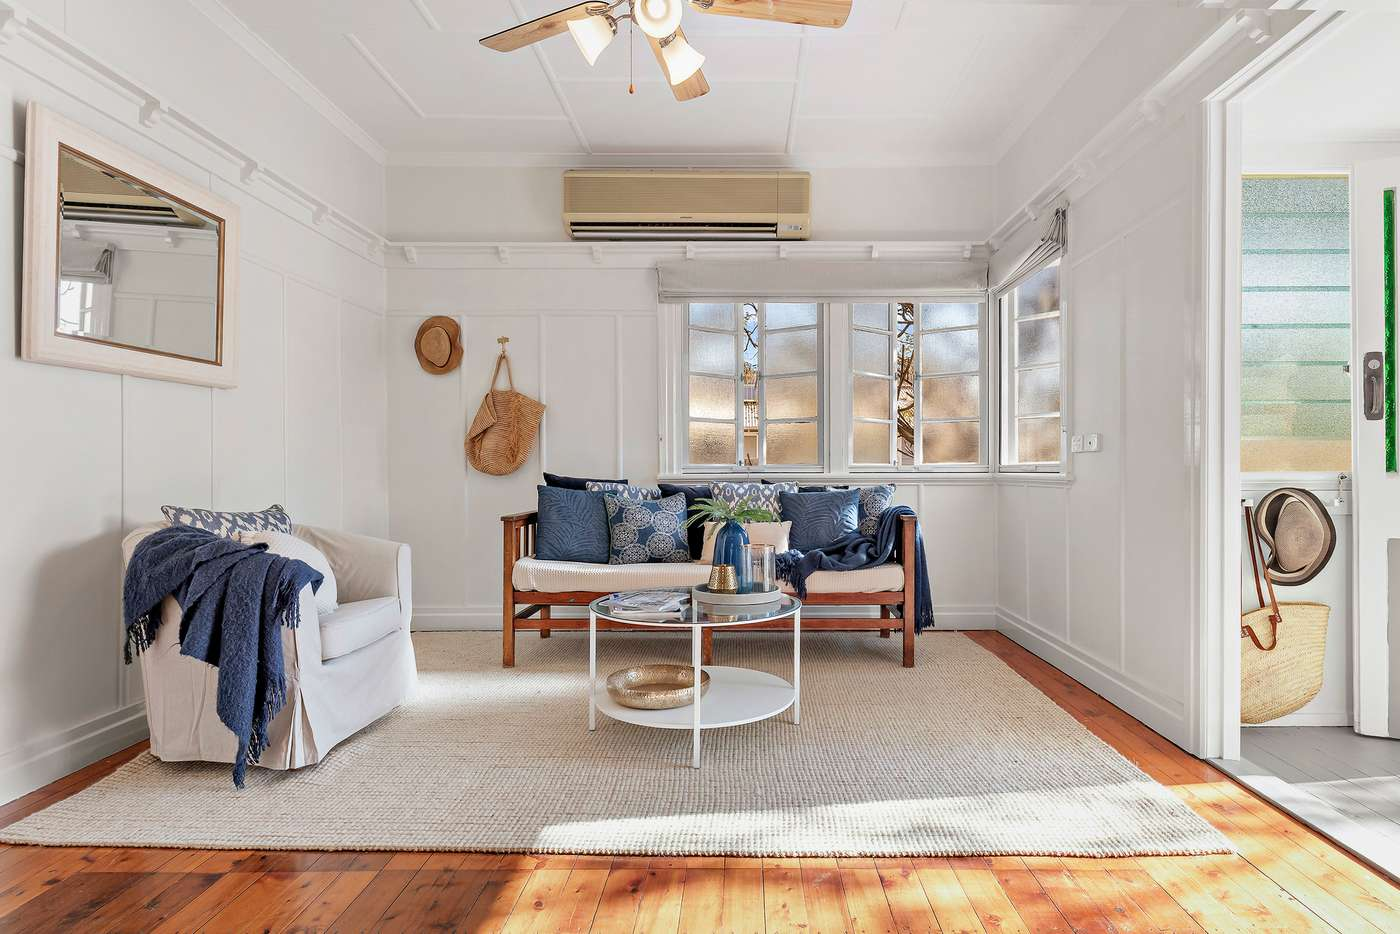 Main view of Homely house listing, 87 Waminda Street, Morningside QLD 4170